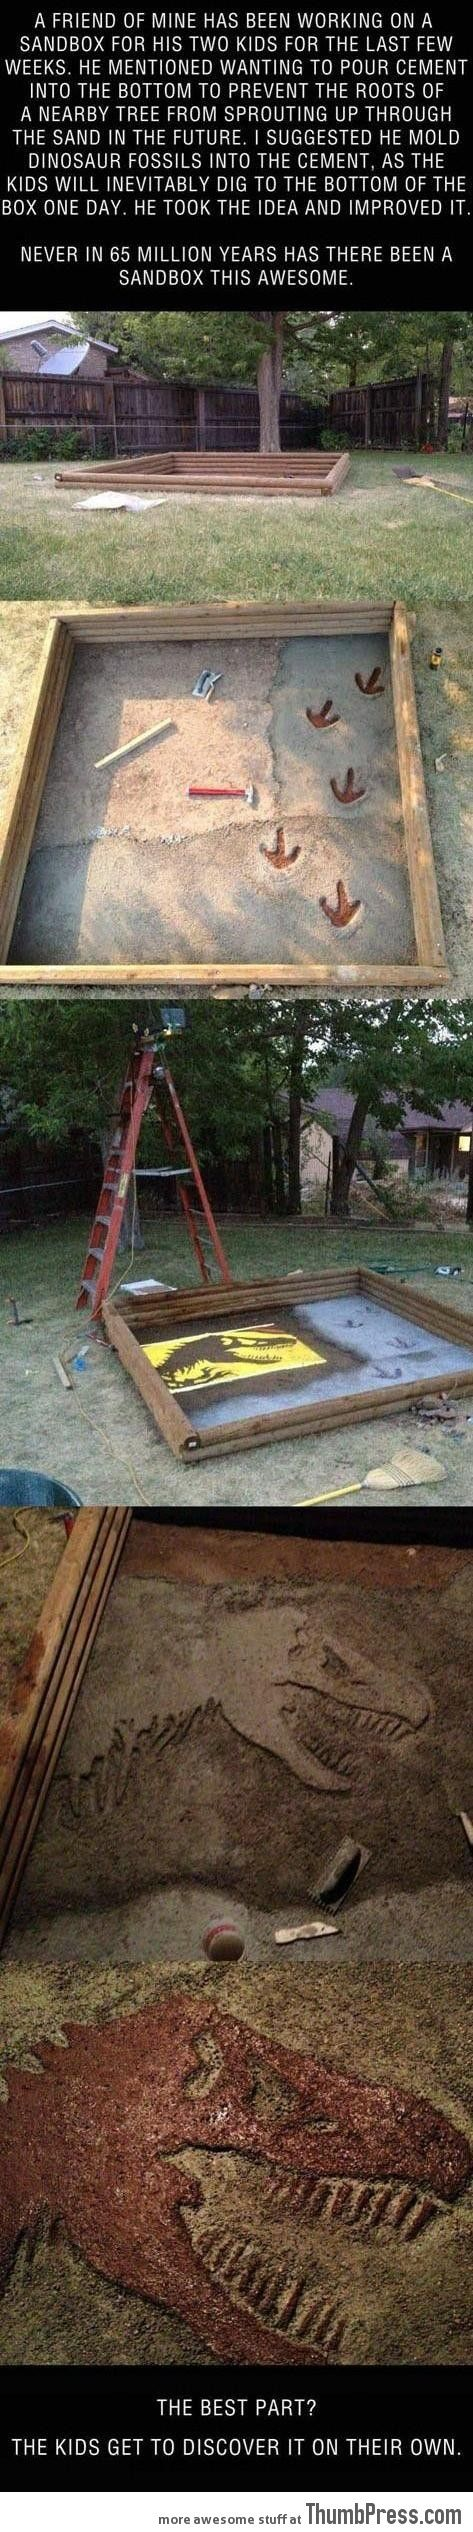 A great sandbox idea! - this dad is awesome!